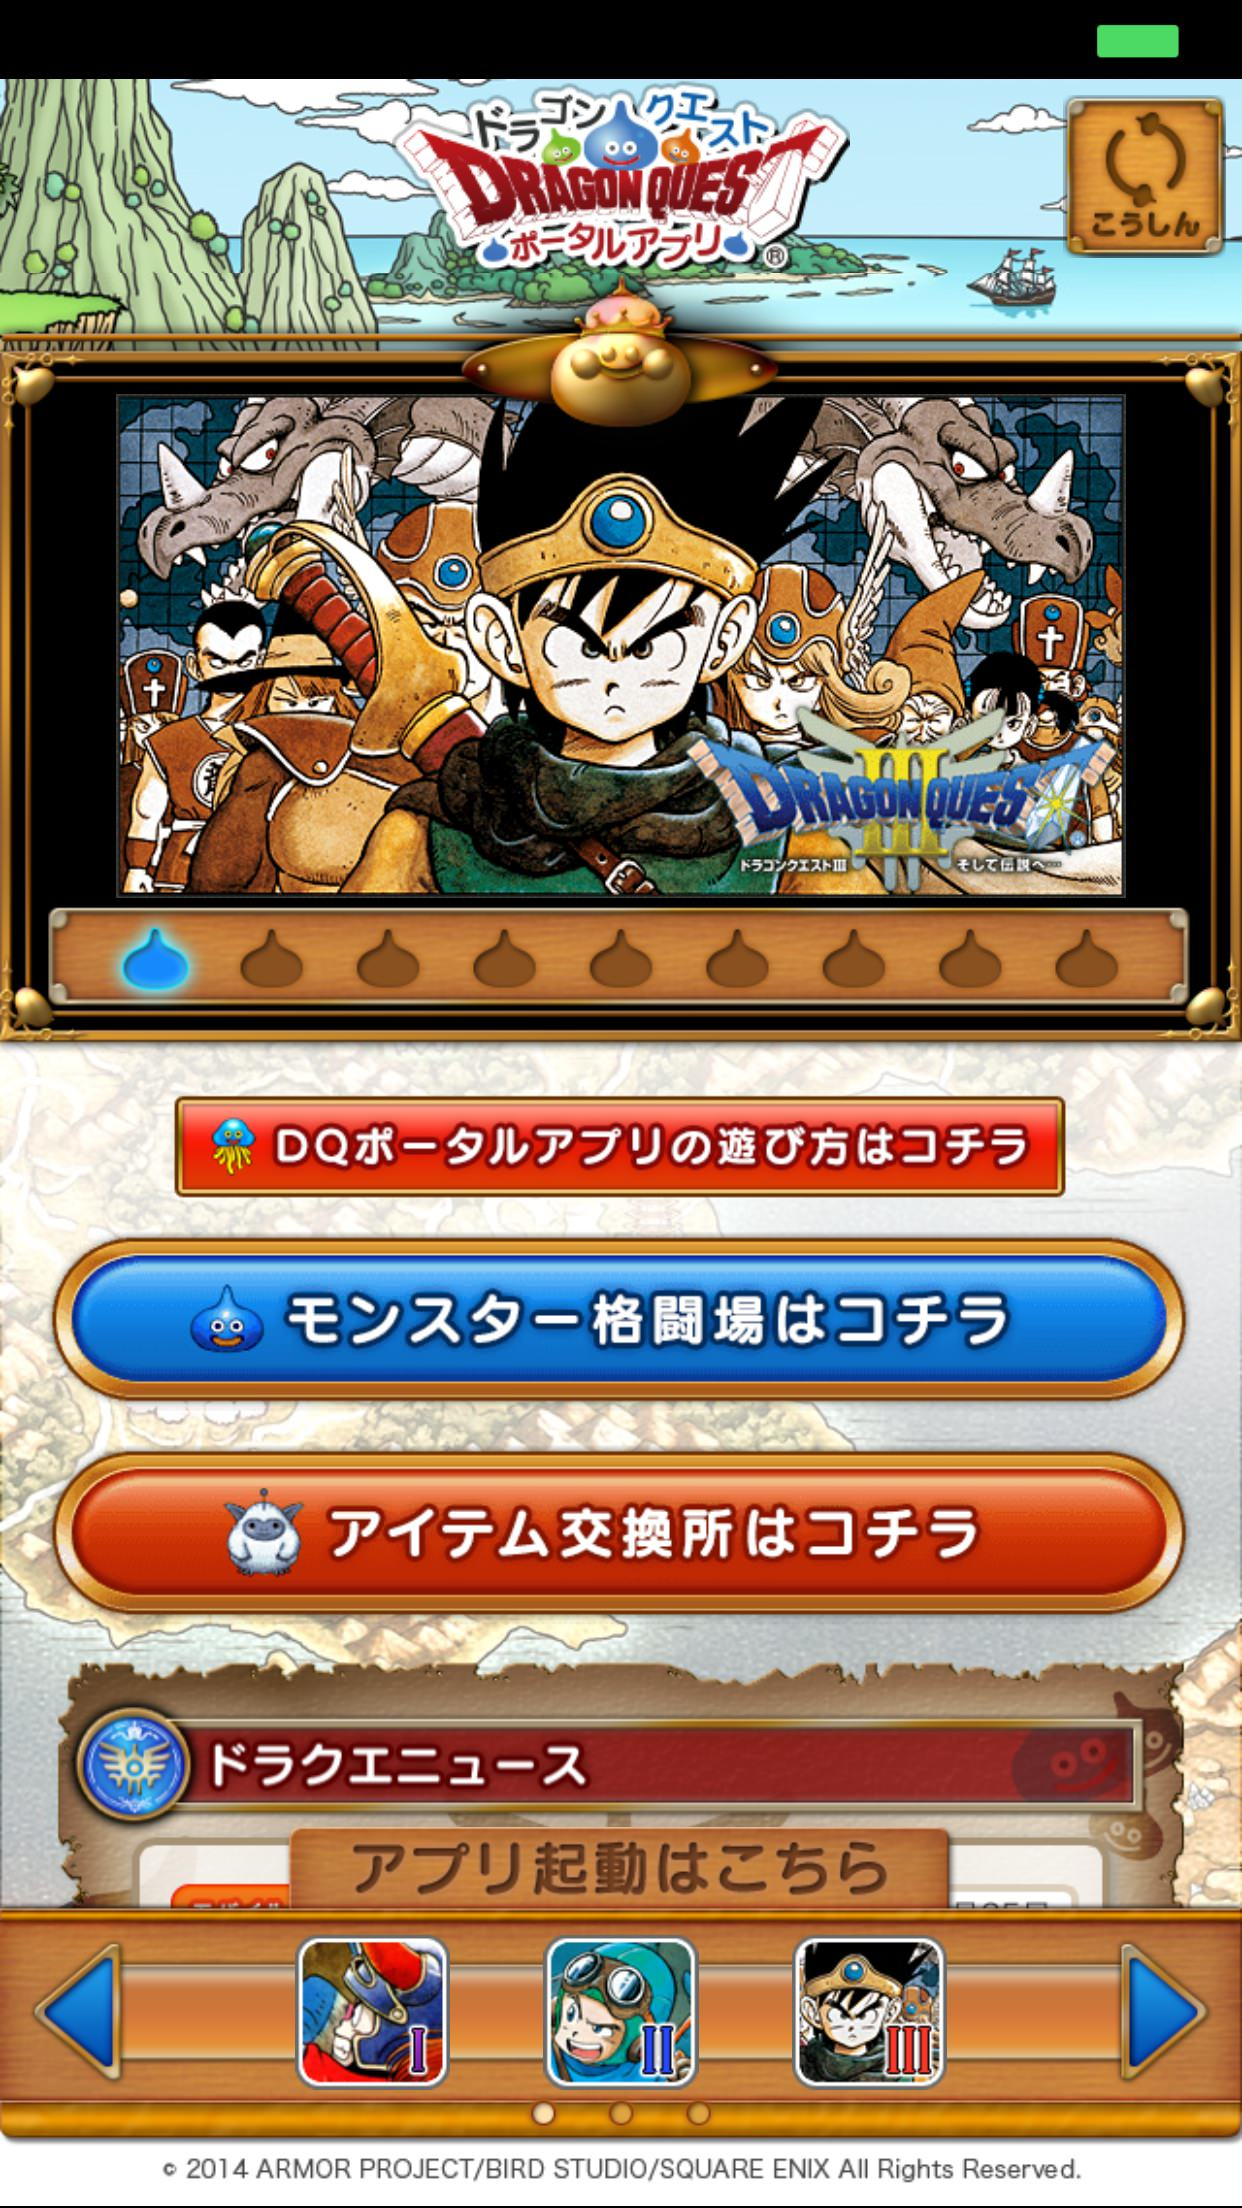 Dragon quest 3 for smartphone release 02